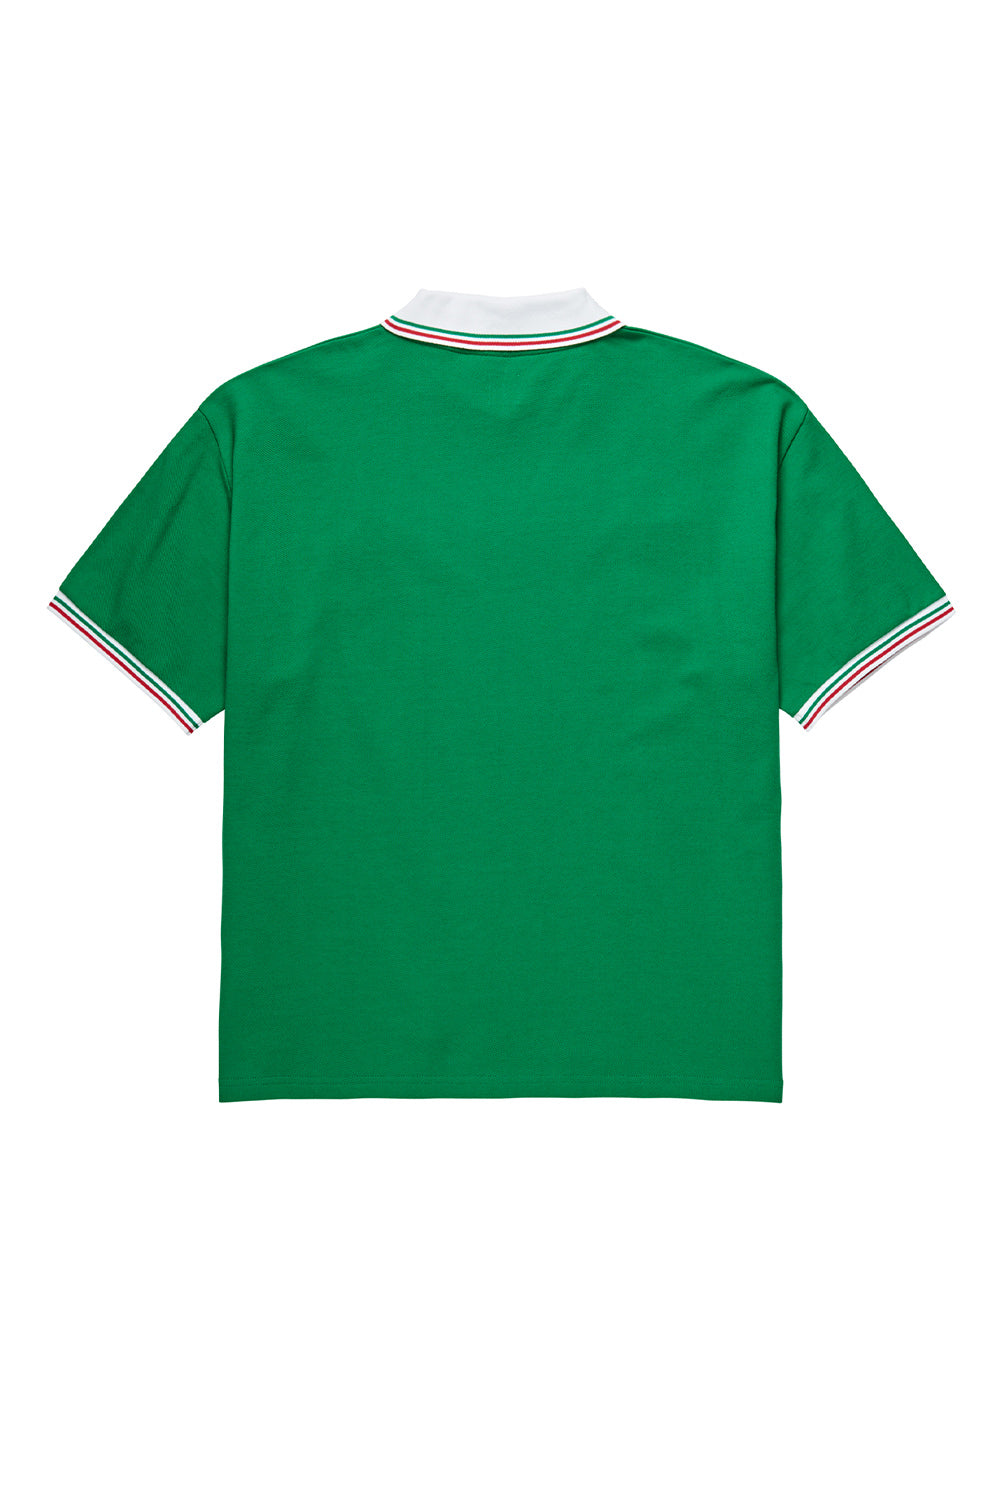 Polar Skate Co Pique Surf Tee - Green